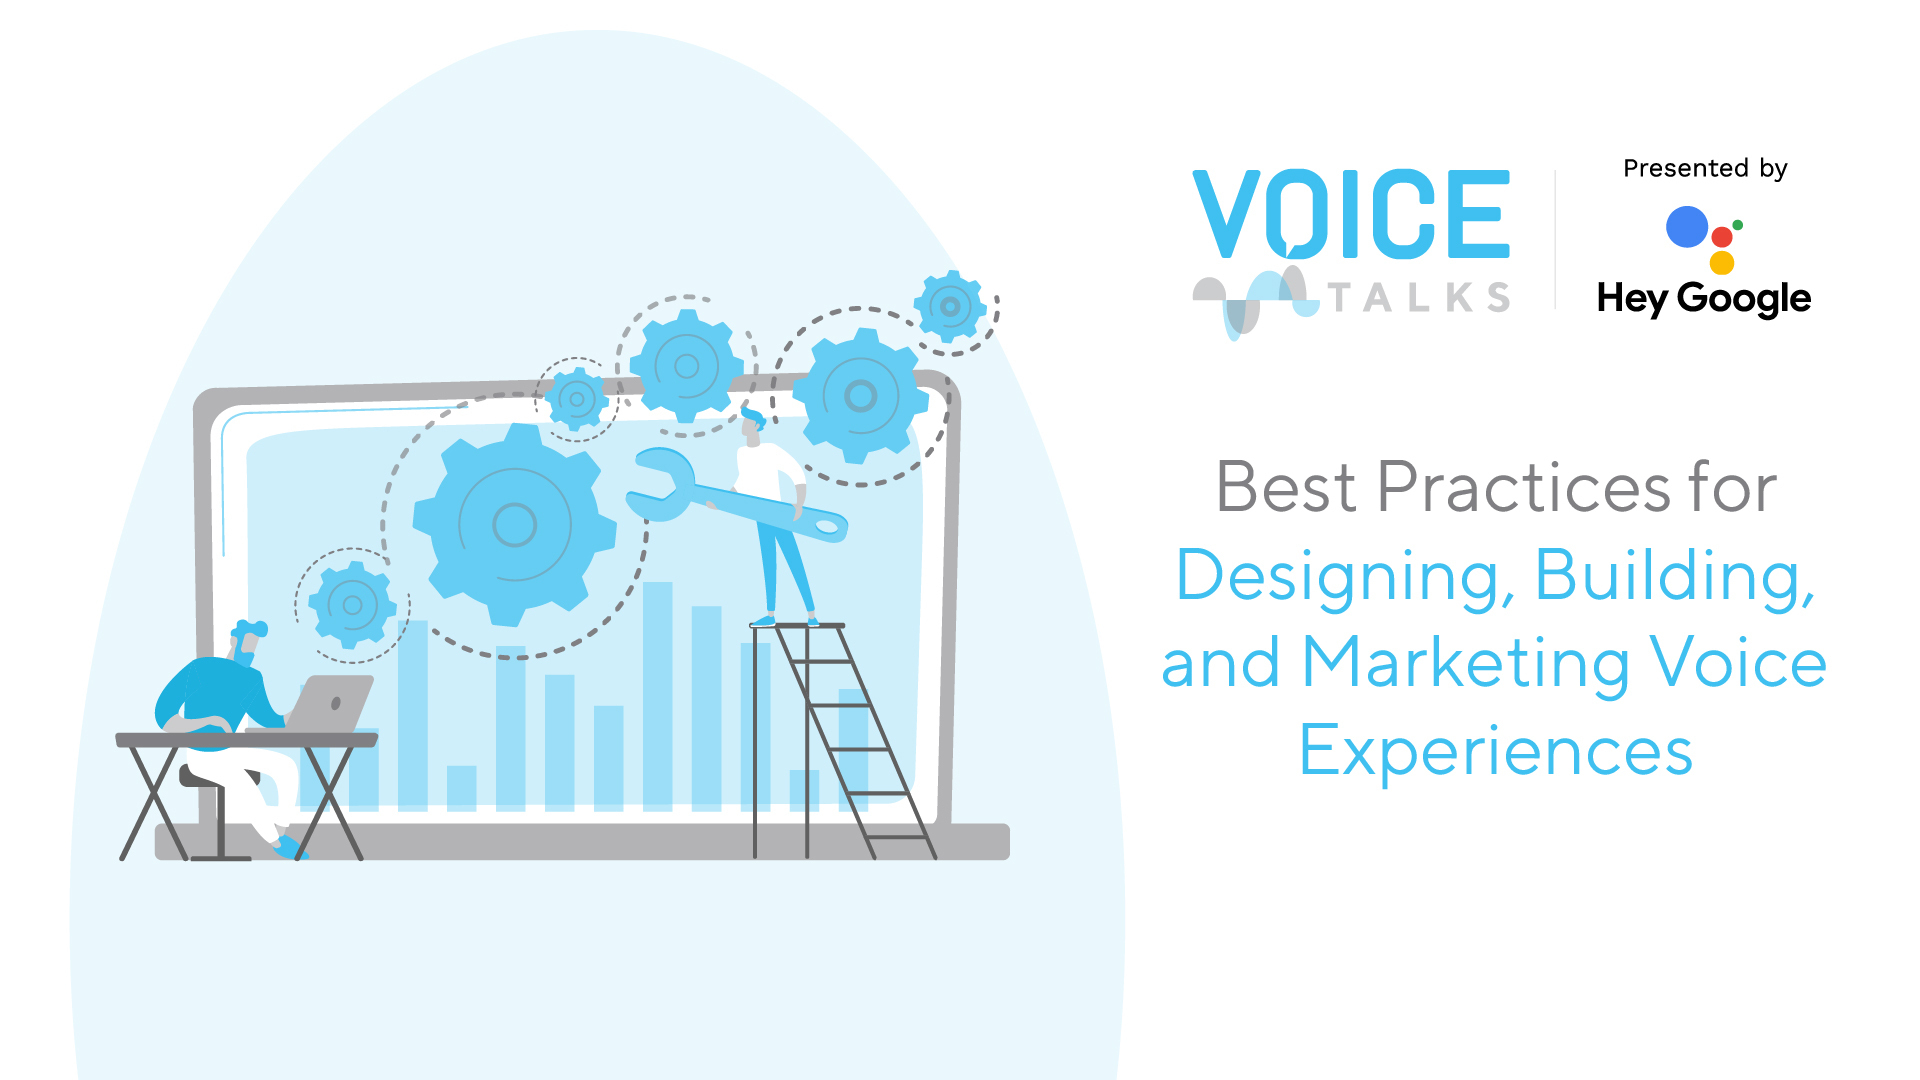 Best Practices for Designing, Building, and Marketing Voice Experiences